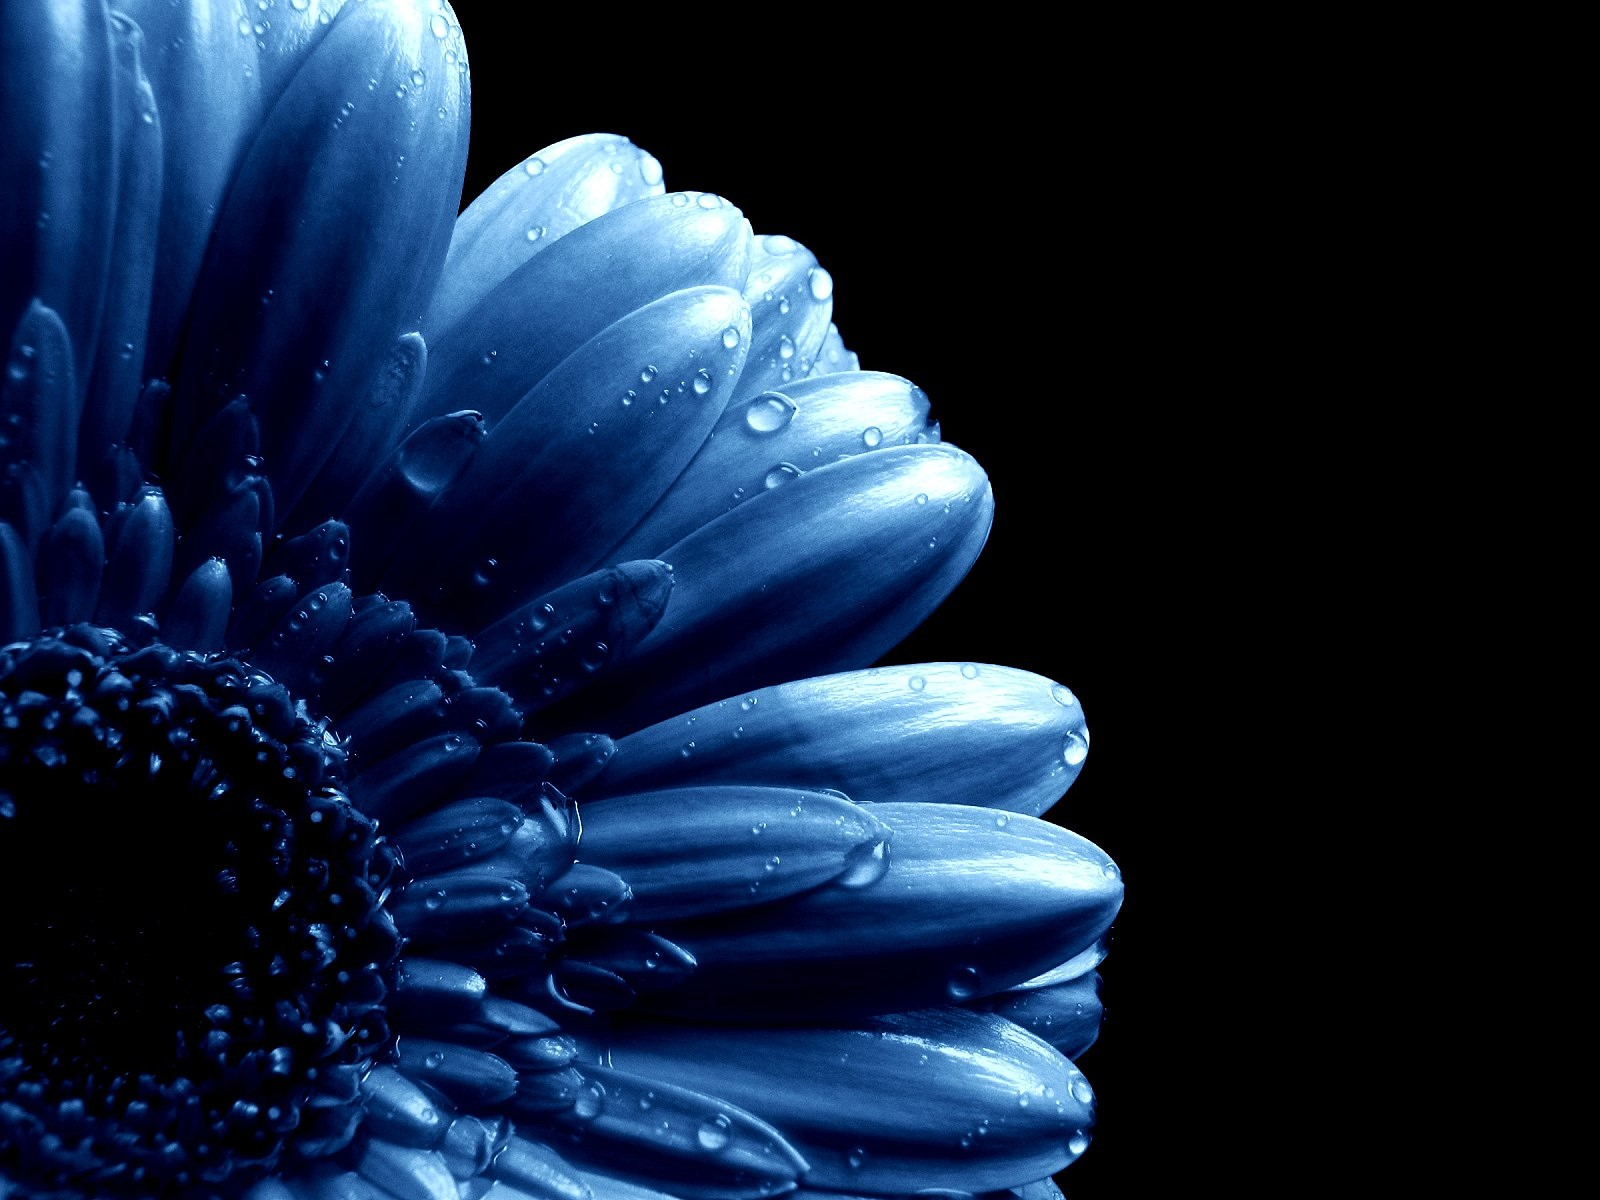 Blue flowers available in october 12 hd wallpaper blue flowers available in october 12 hd wallpaper dhlflorist Images